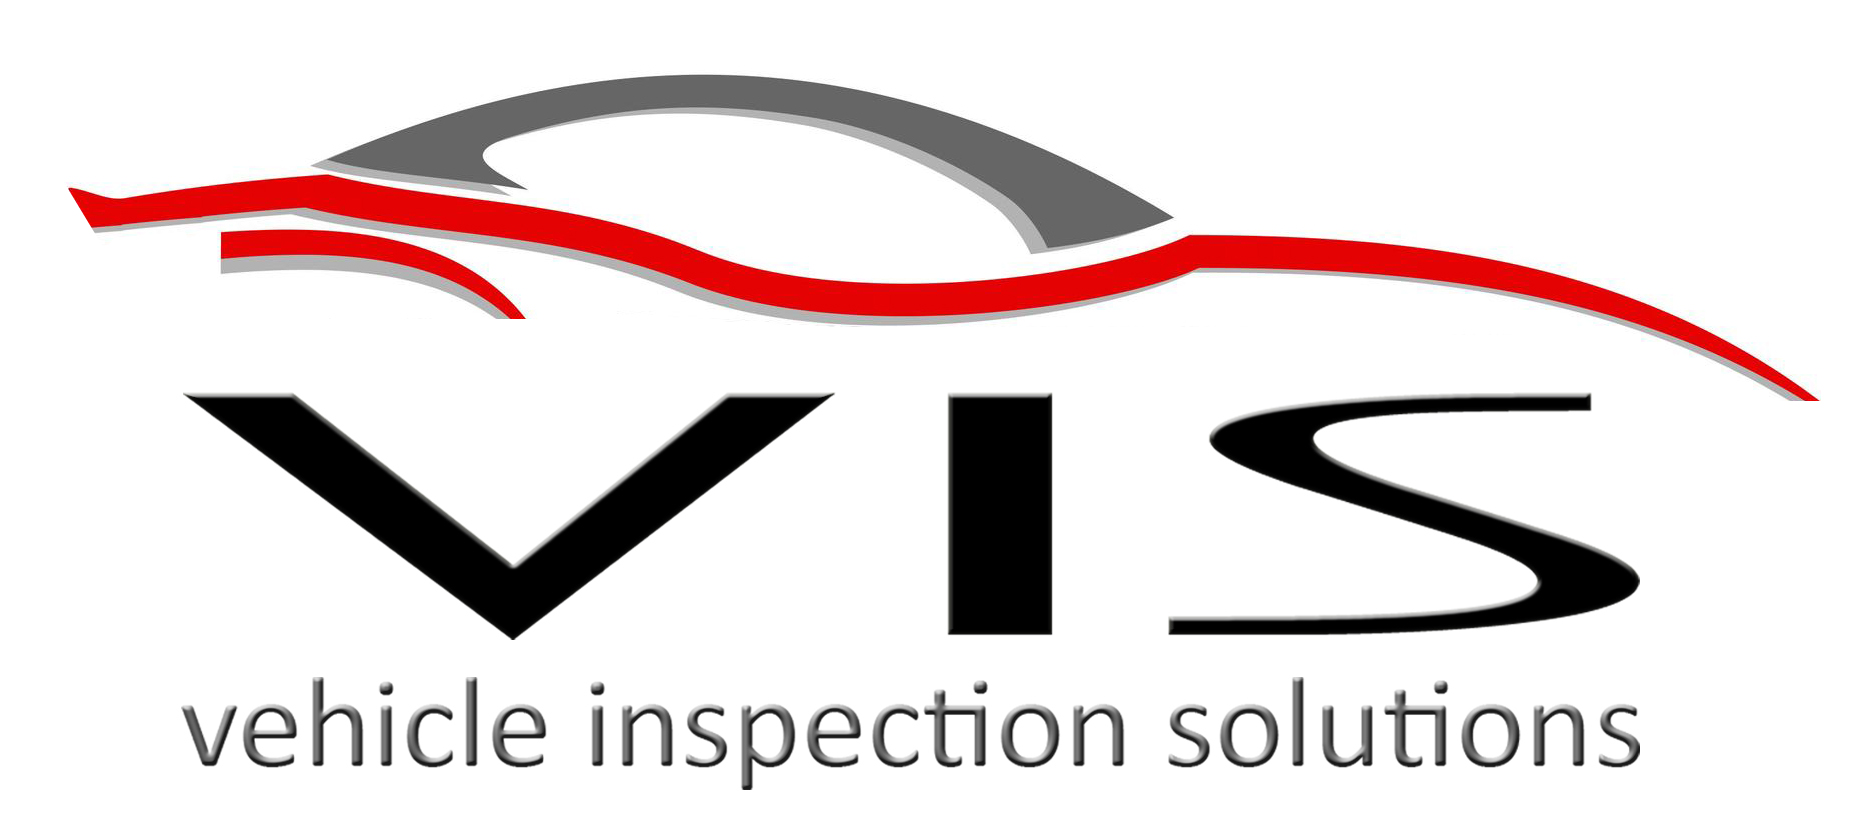 Vehicle Inspection Solutions – Vehicle Inspection Solutions